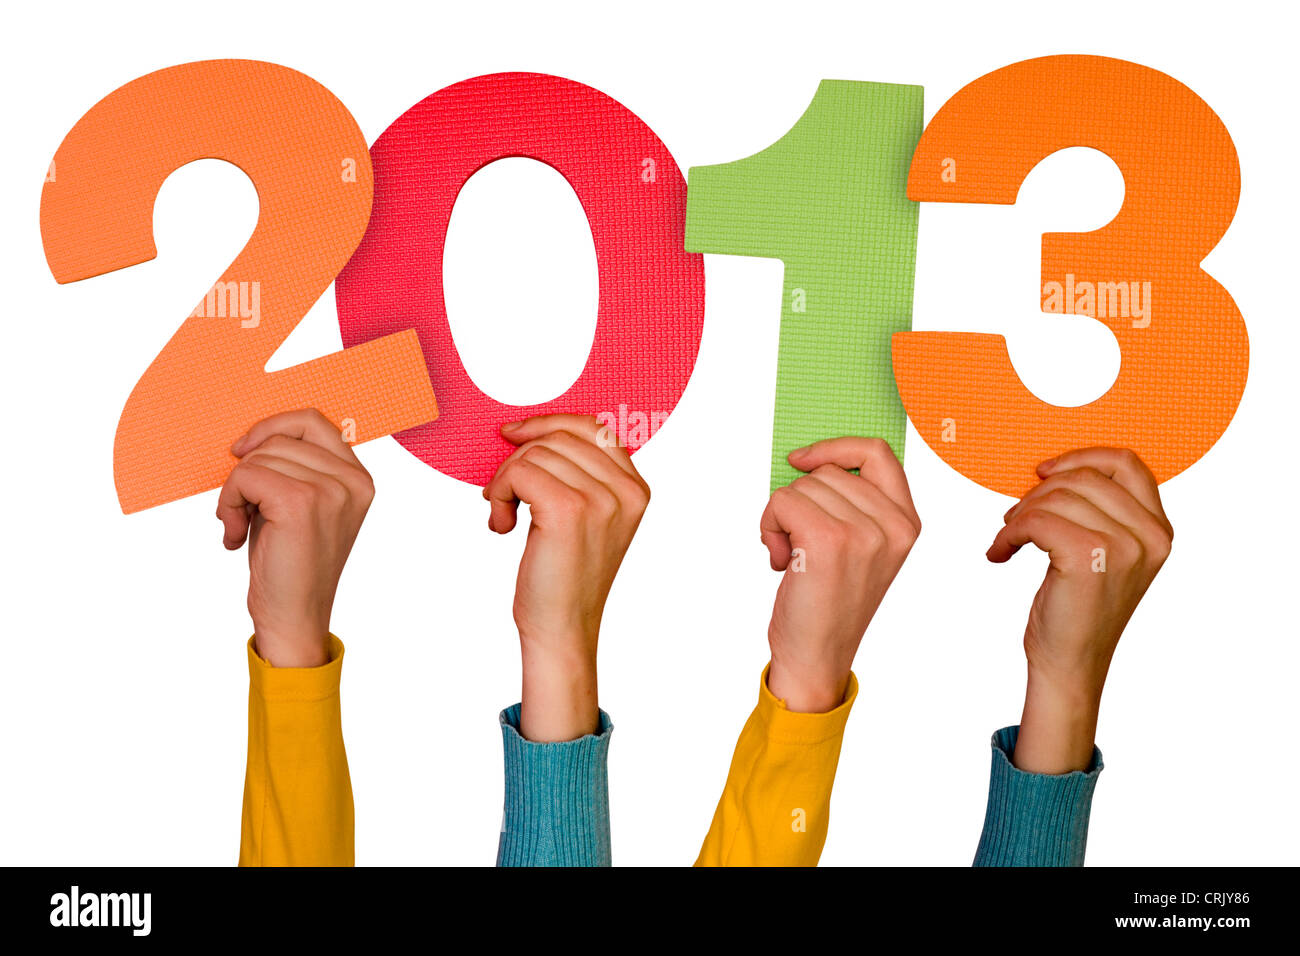 hands with color numbers shows future year 2013 - Stock Image